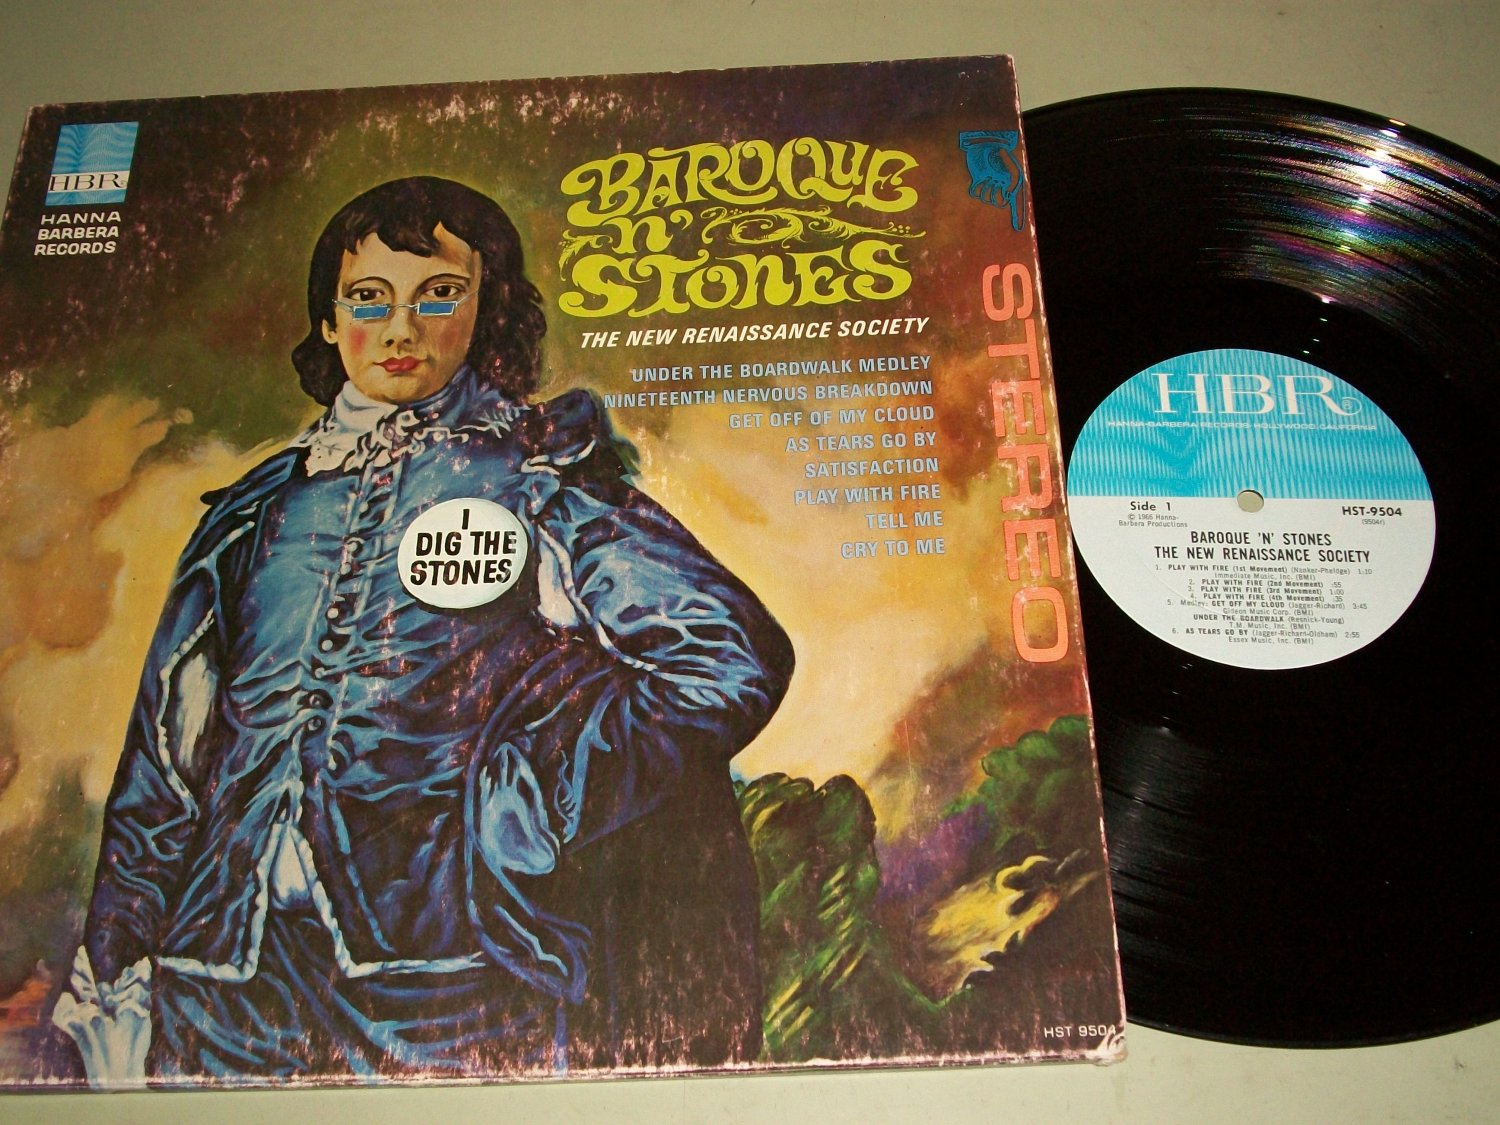 I Dig The Stones - Baroque N' Stones - The New Renaissance Society - HBR 9504 -  Record  LP